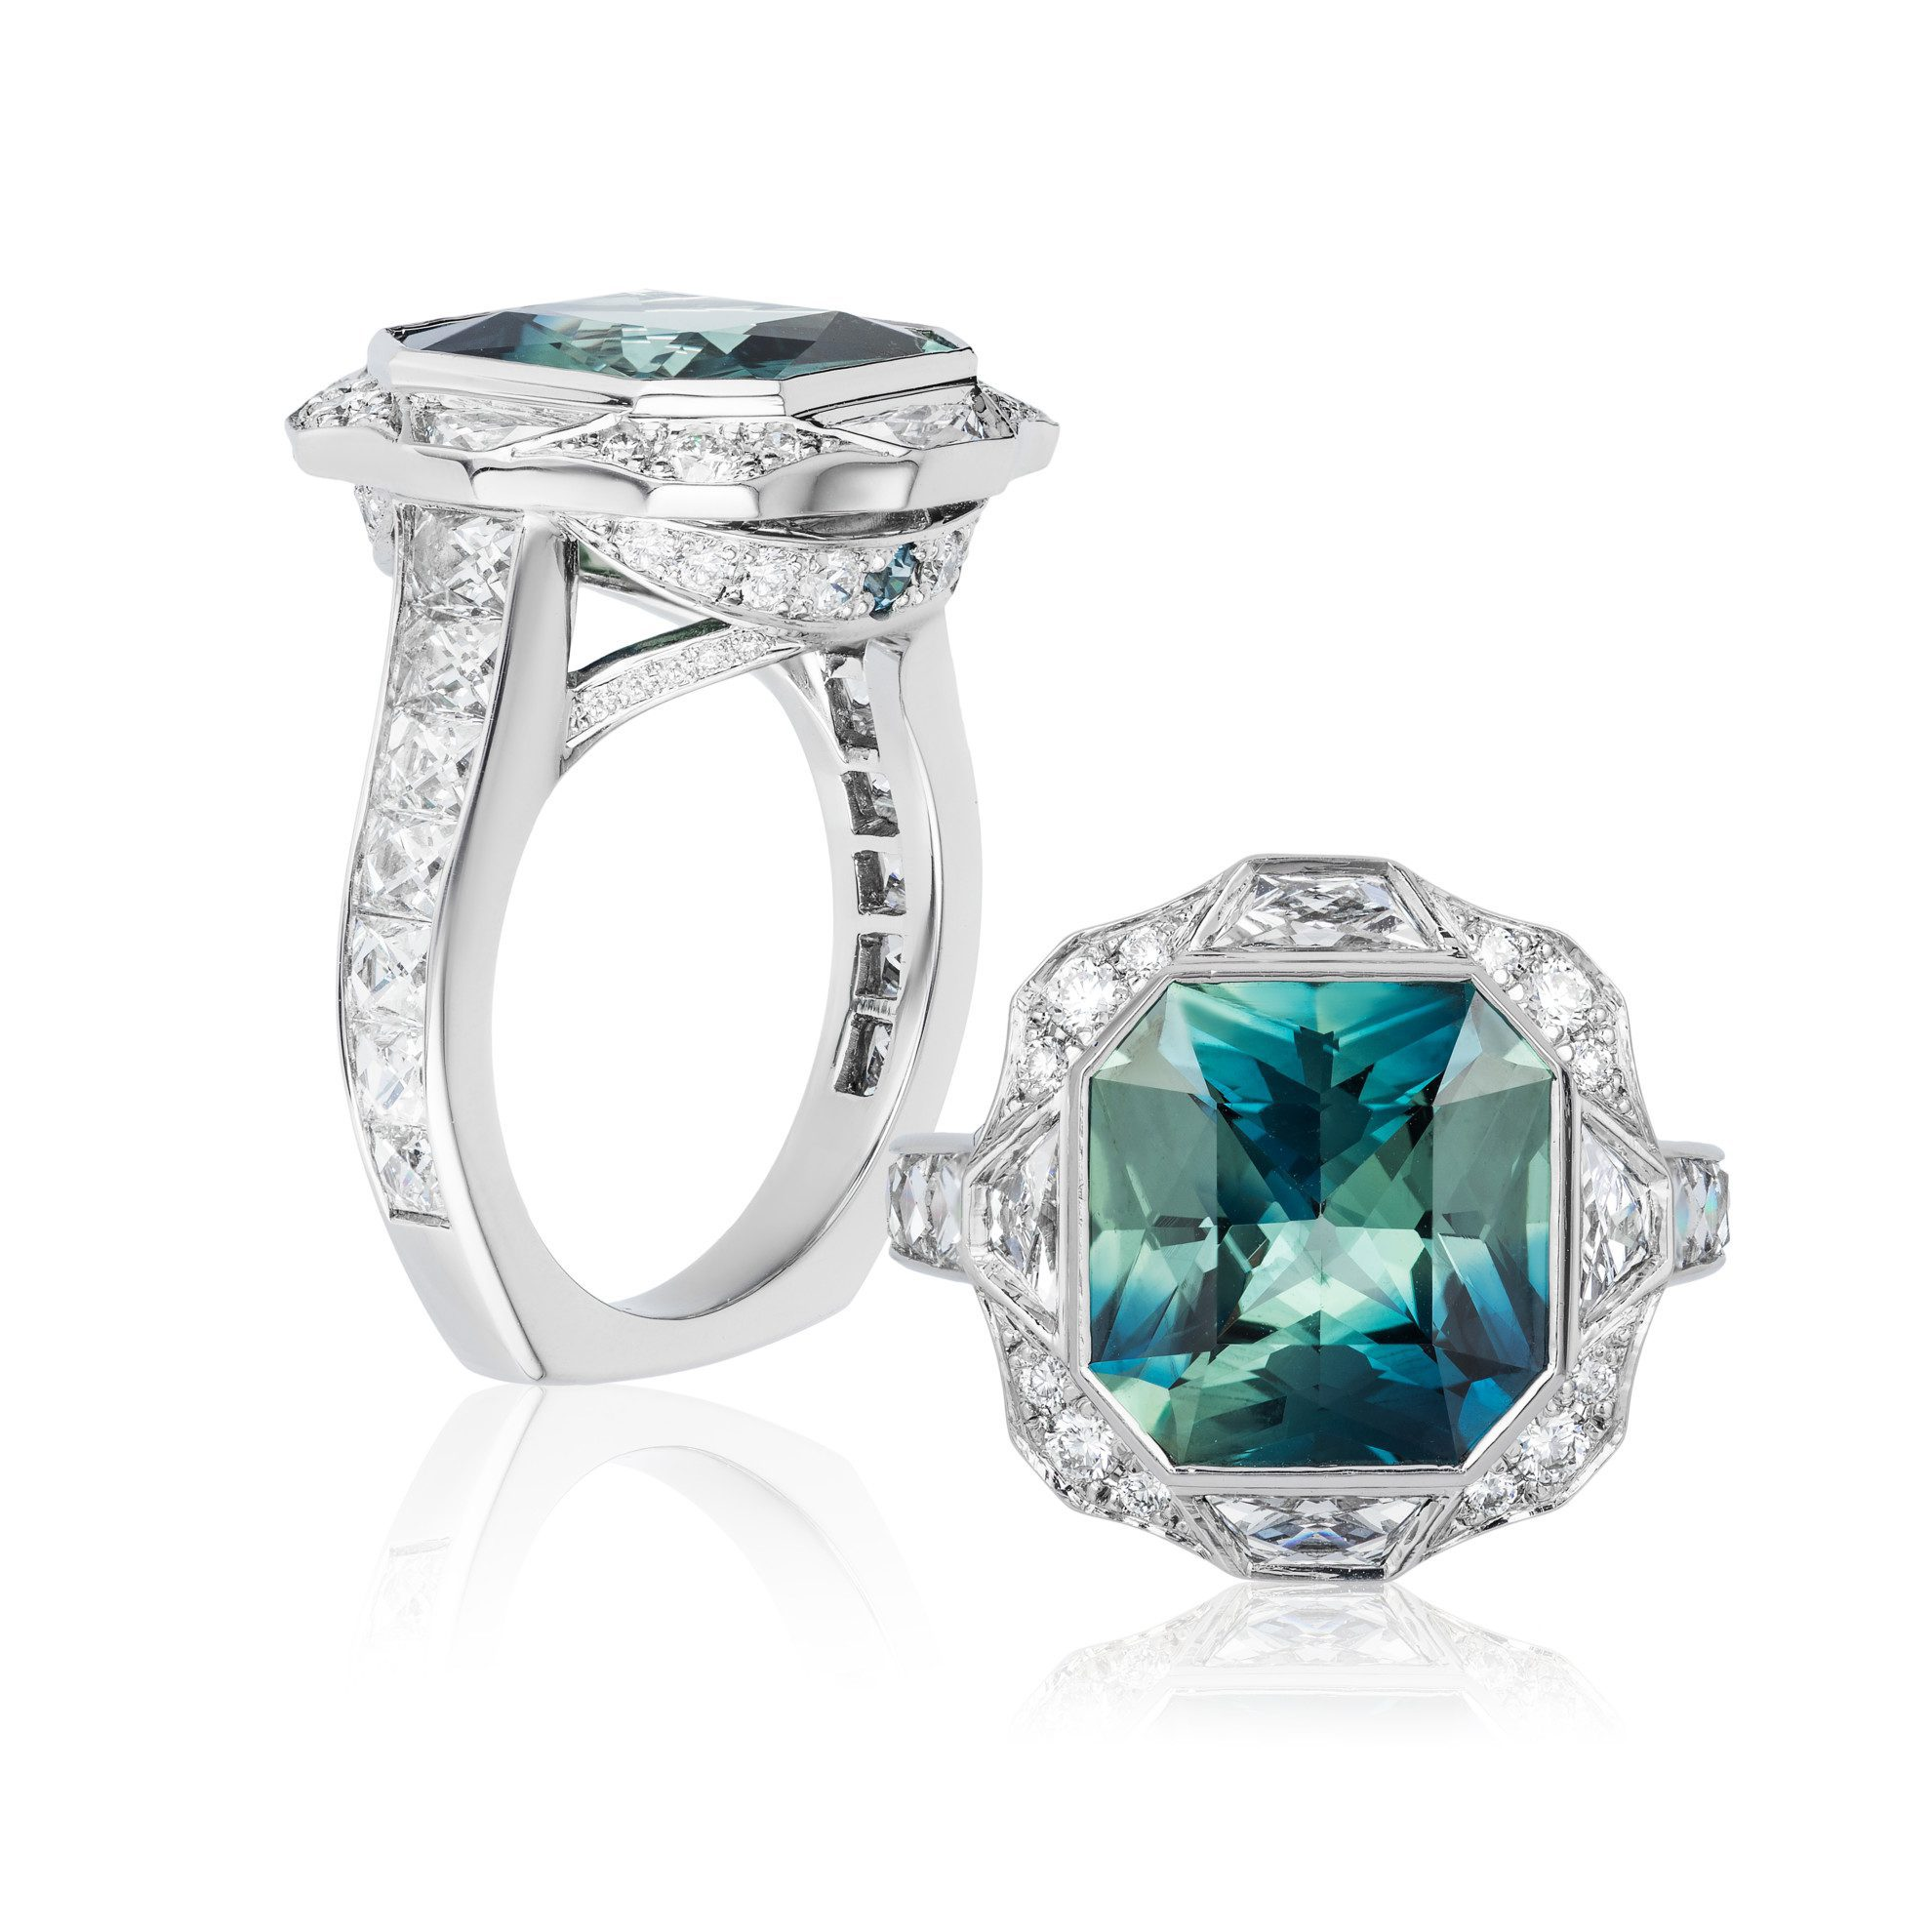 ring with bezel and channel settings - protective gem settings